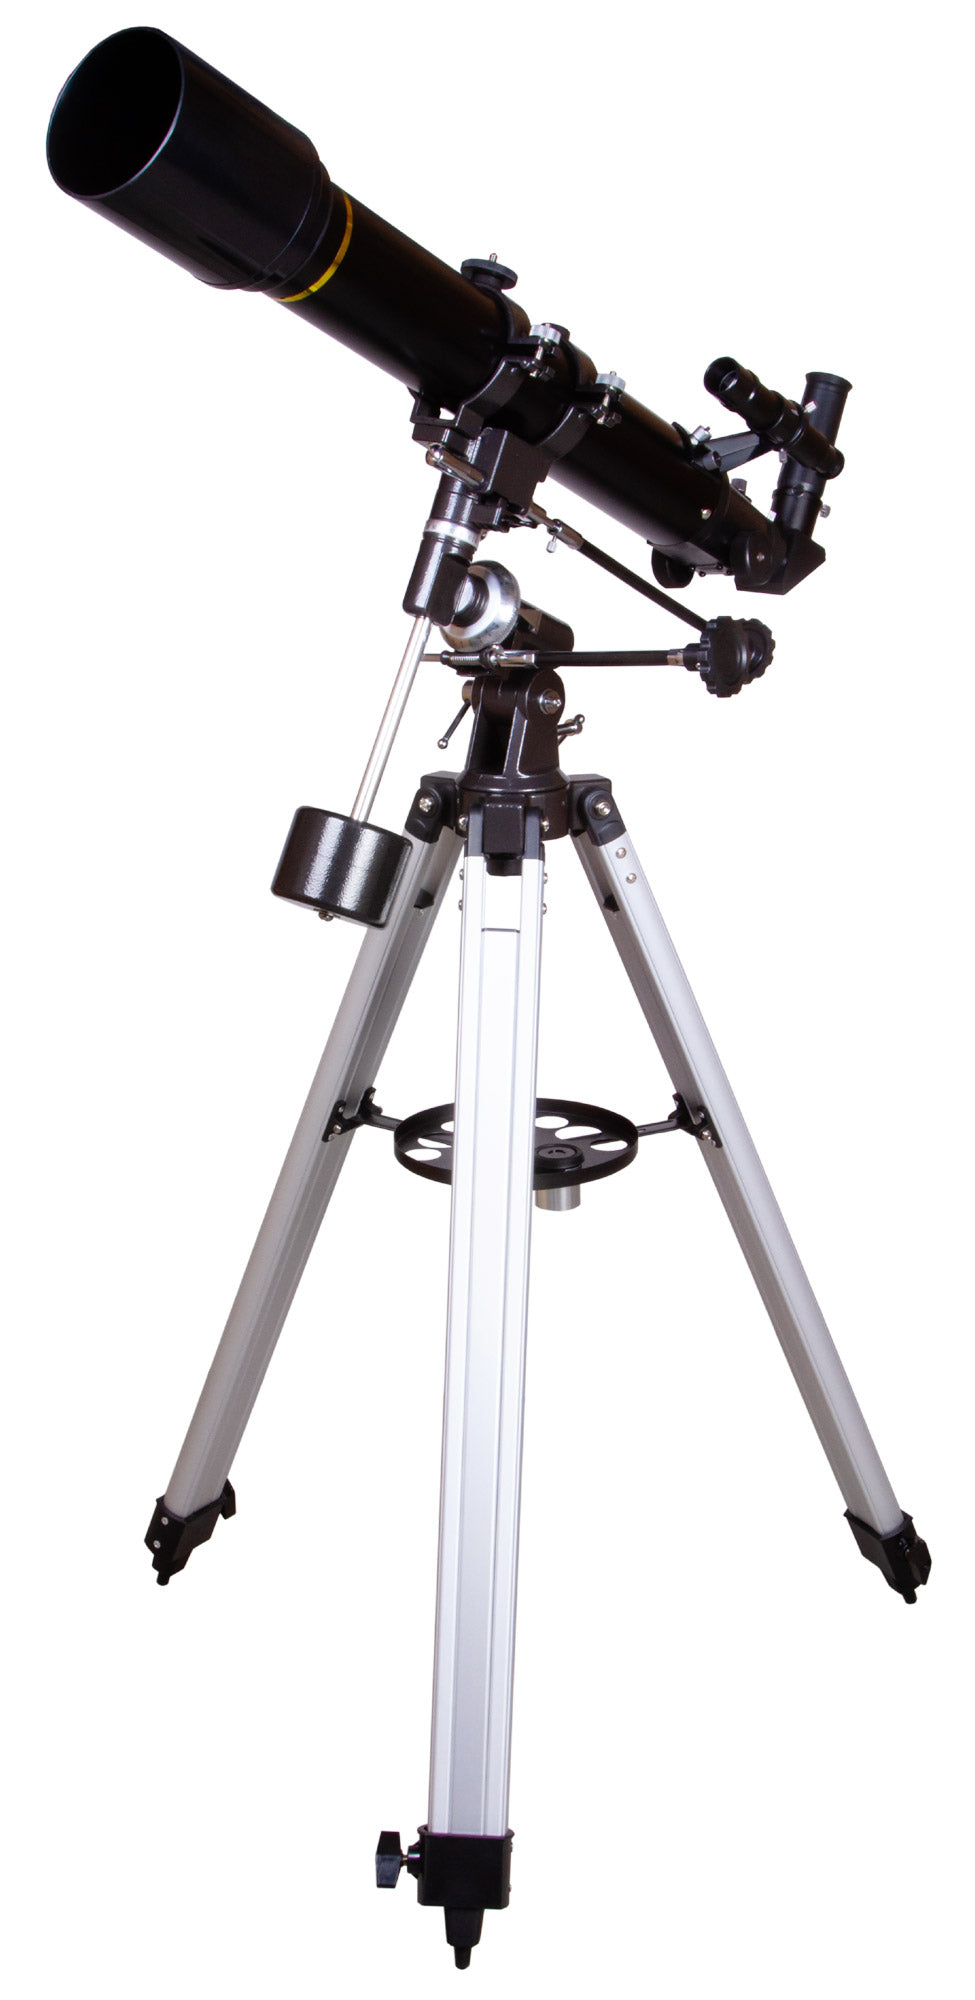 Levenhuk 70mm Skyline PLUS 70T Telescope